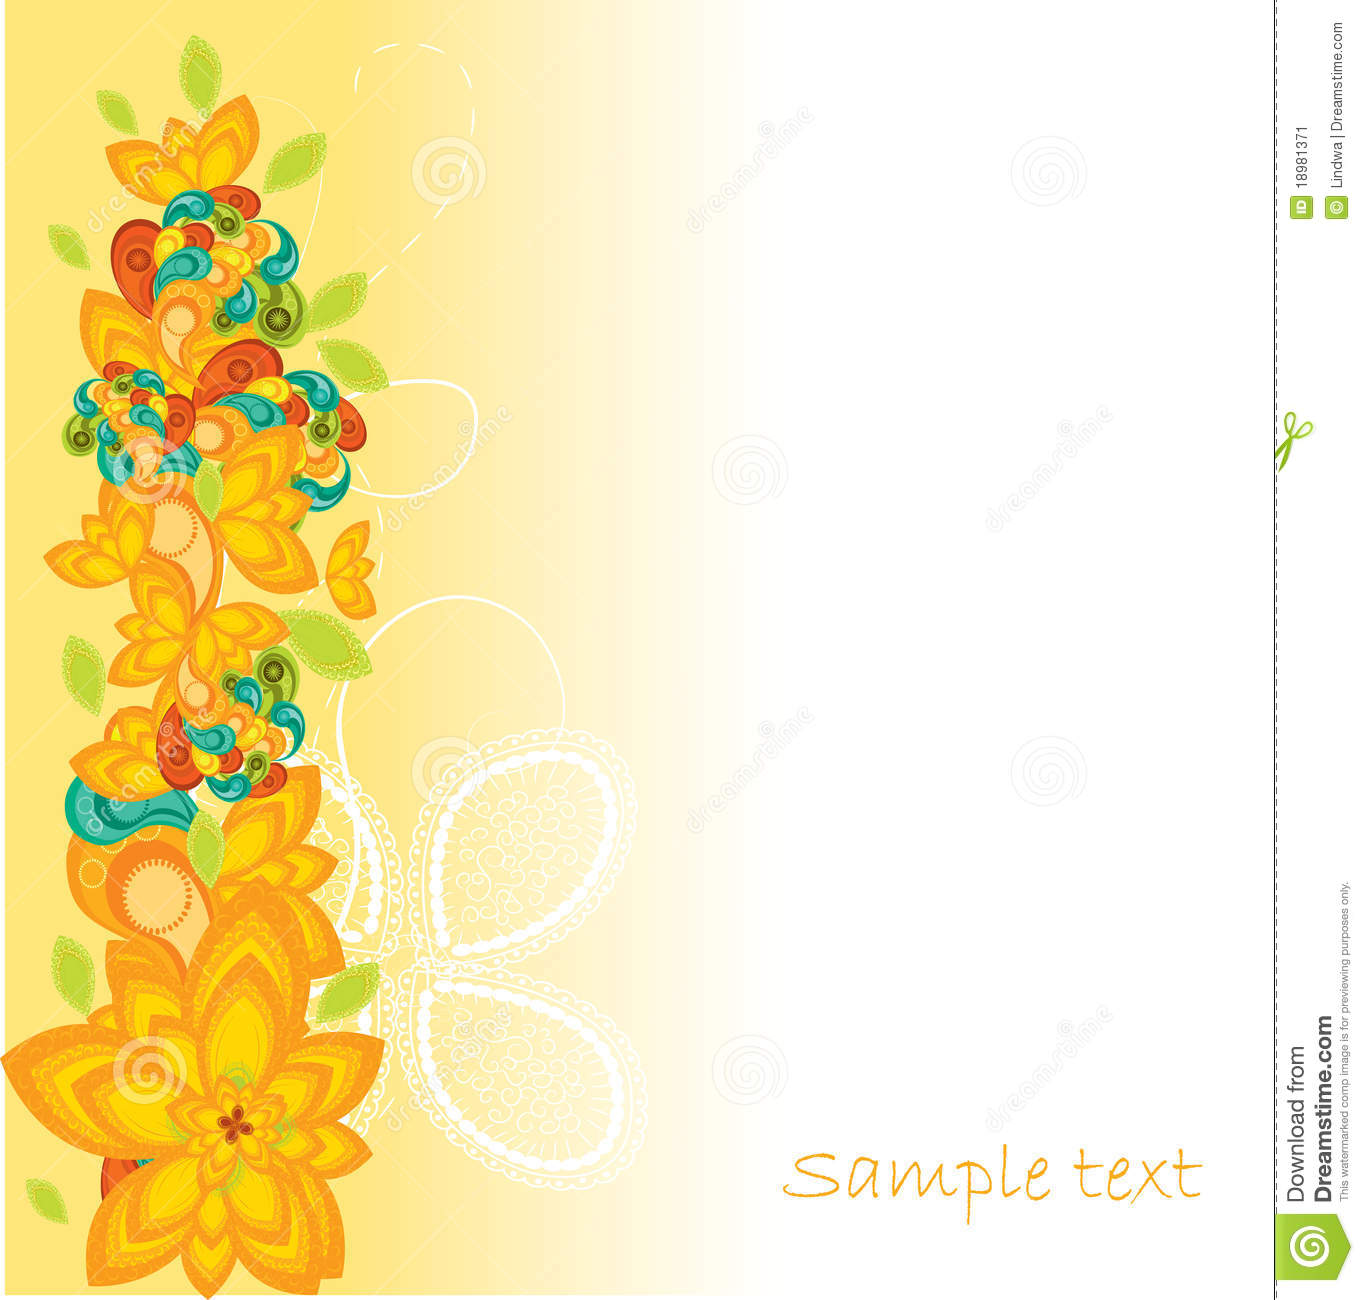 Flower Background Design Stock Vector. Illustration Of